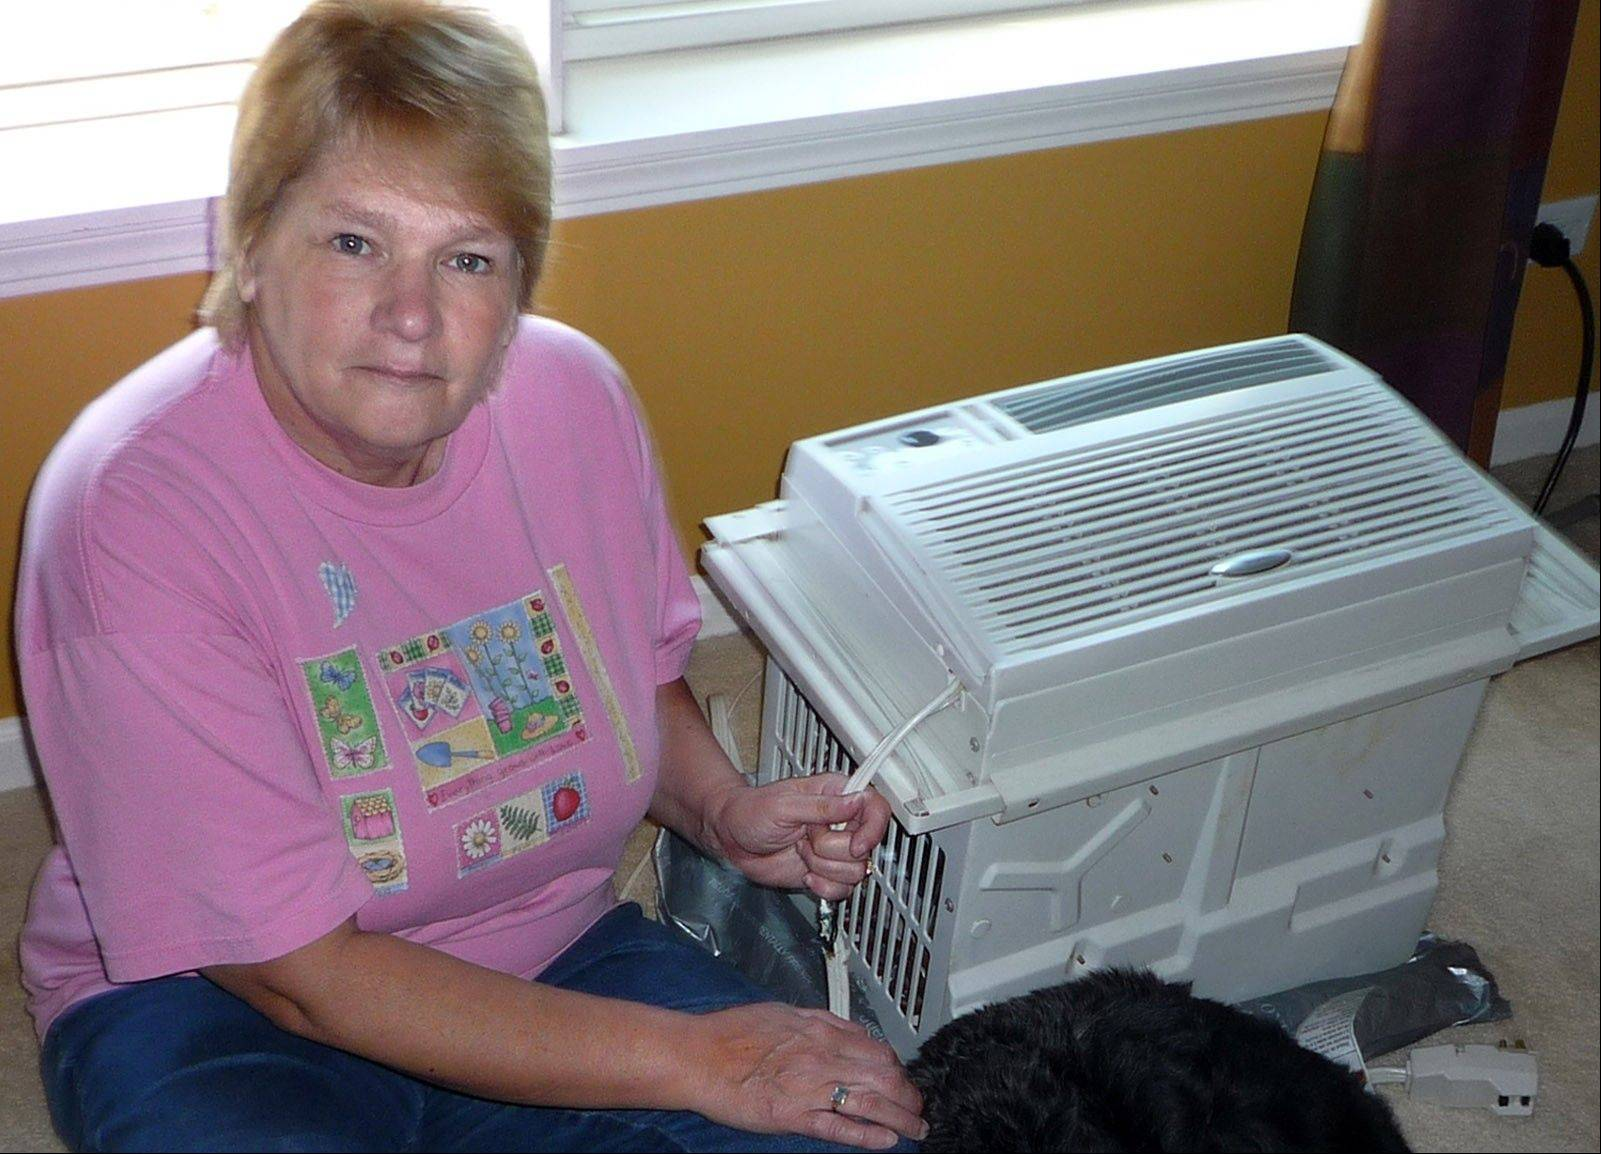 Wilting under the threat of a $100-a-day fine, Marilyn Webel reluctantly pulled this small air conditioner from her bedroom window to adhere to the Heritage of Huntley Homeowners Association's new ban against window air conditioners.